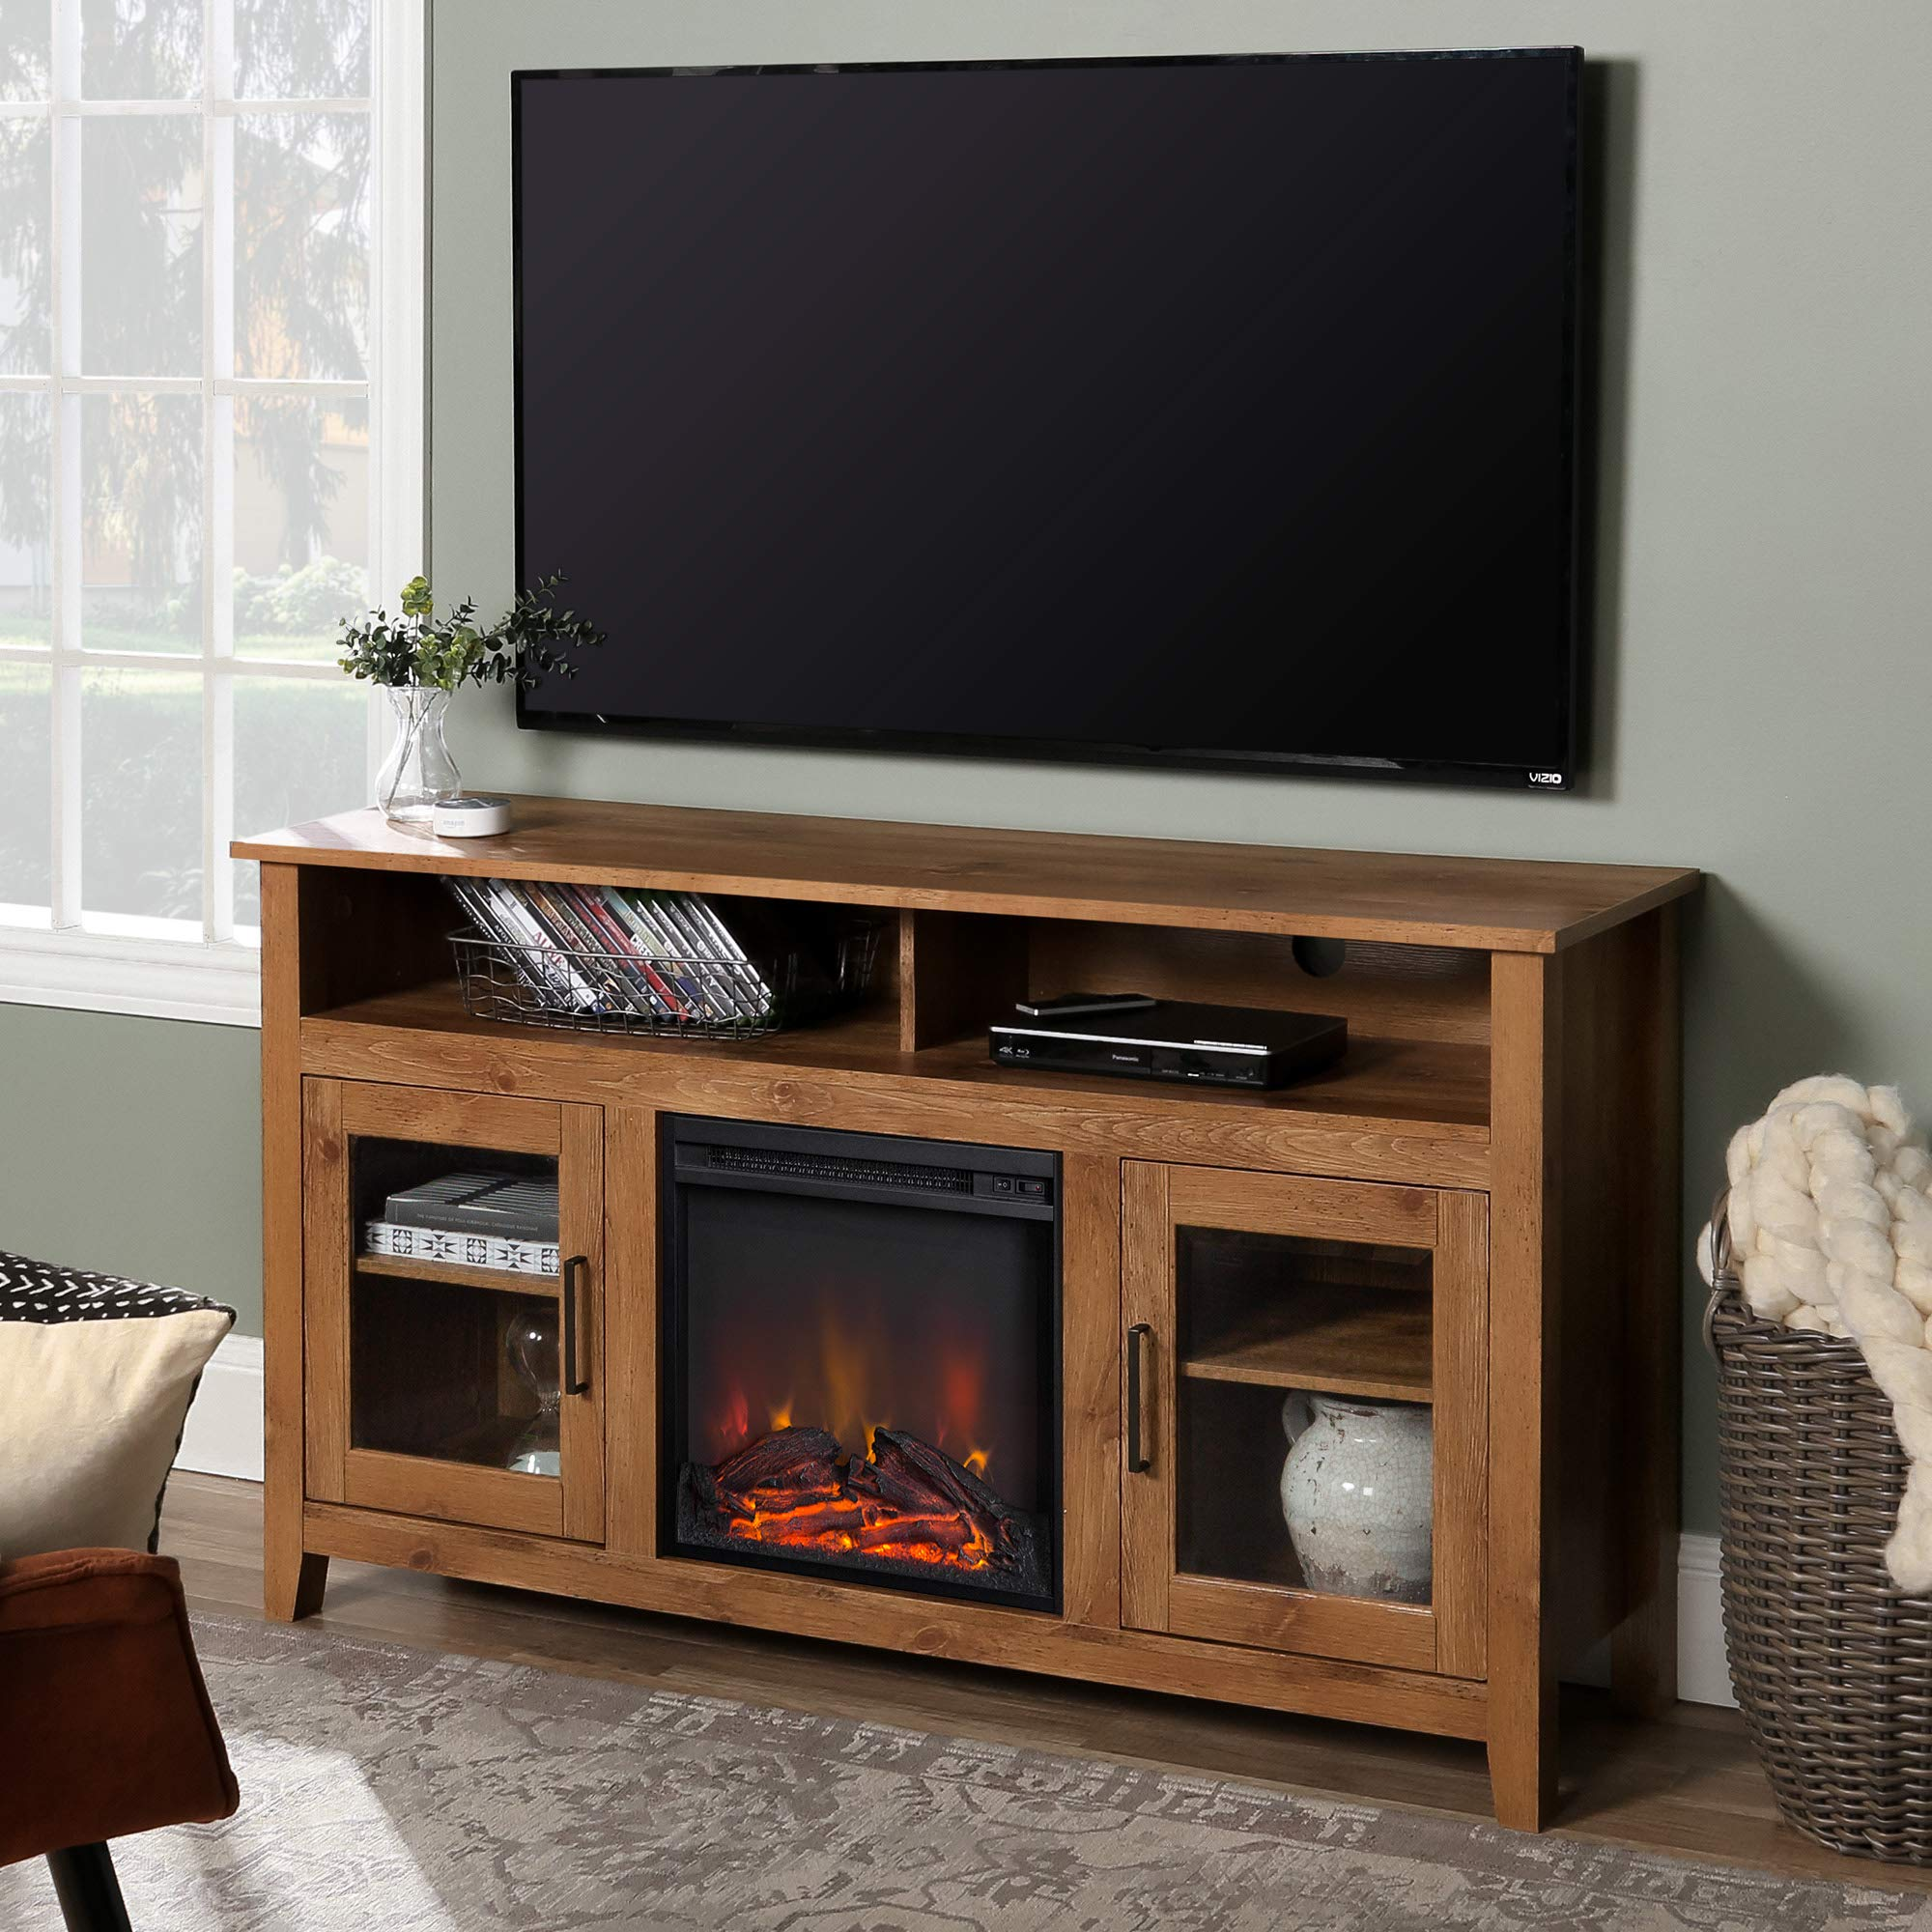 WE Furniture AZ58FP18HBBW Tall Rustic Wood Fireplace Stand for TV's up to 64'' Living Room Storage, Barnwood by WE Furniture